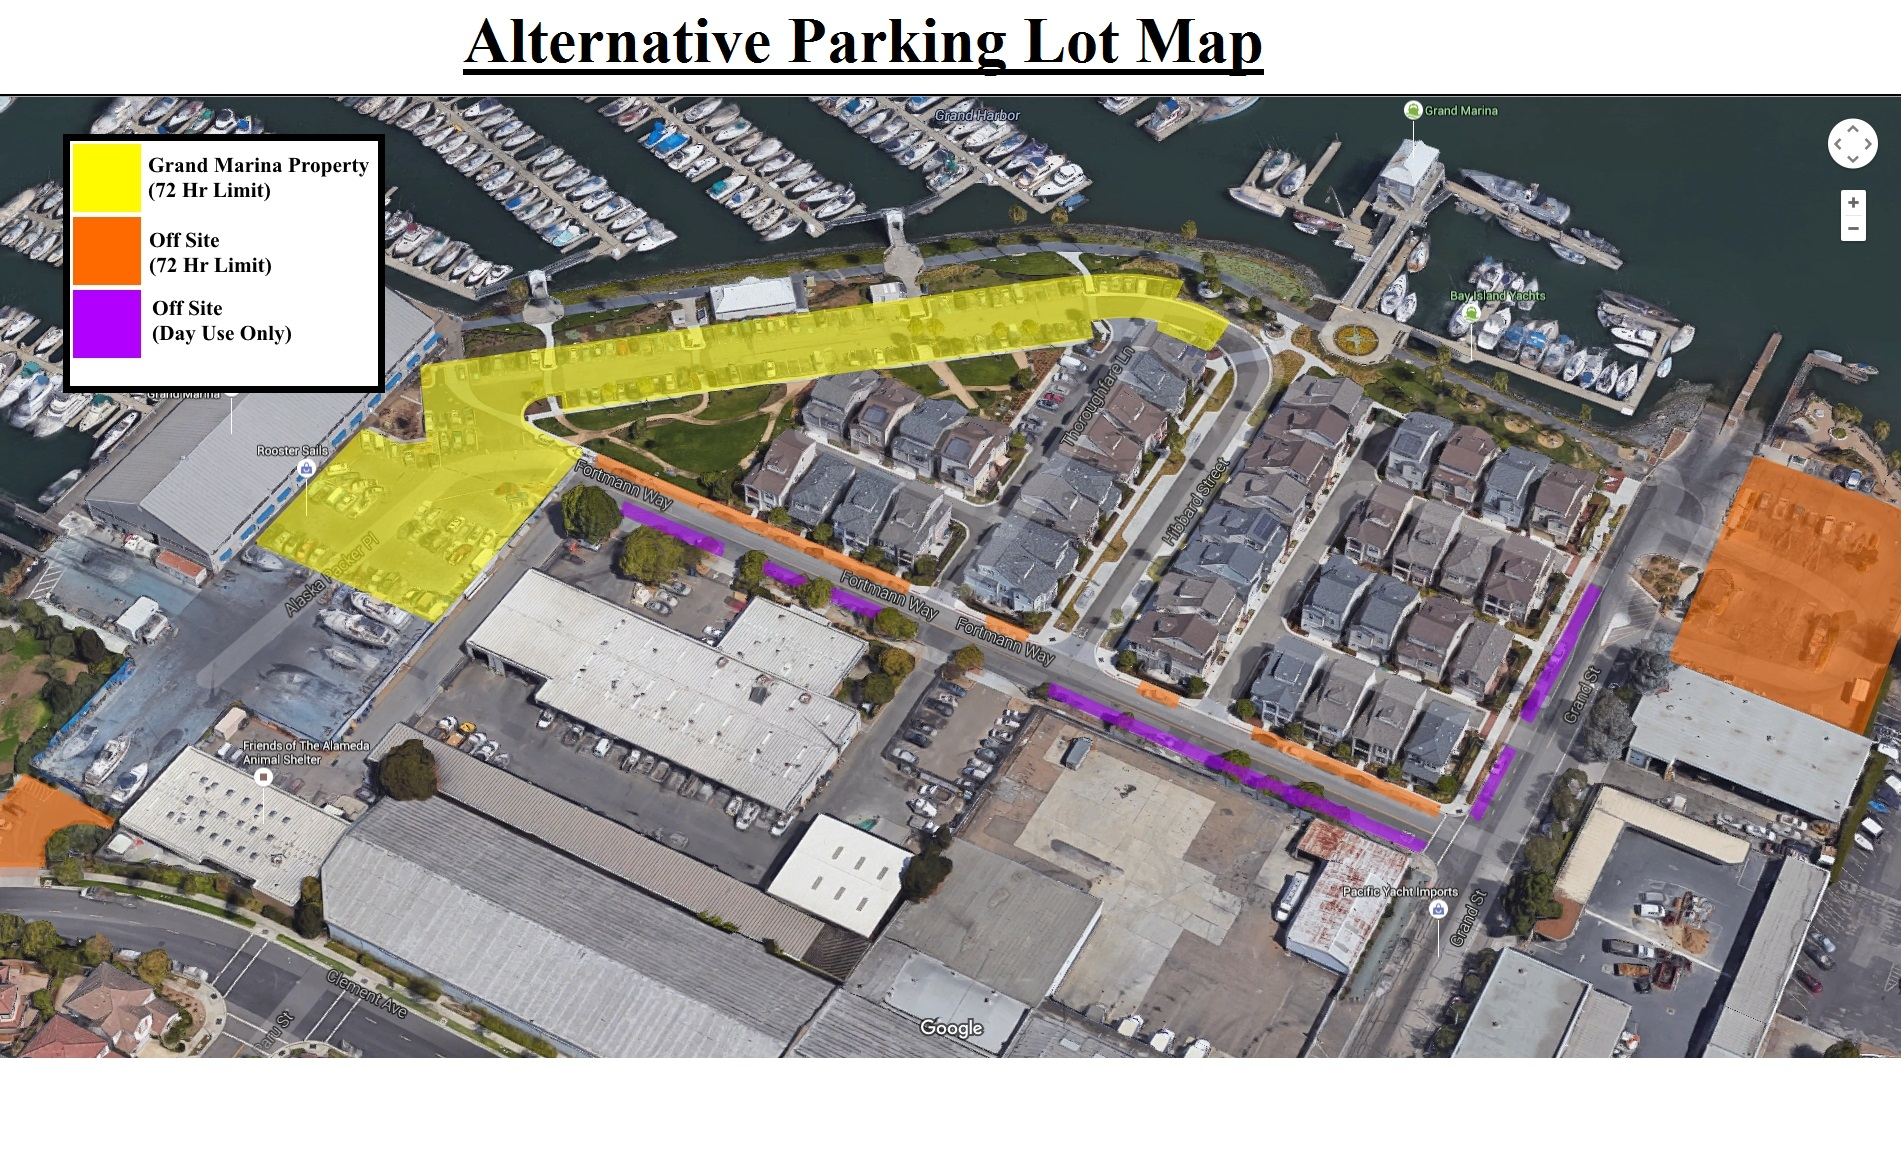 Grand Marina Parking Alternatives